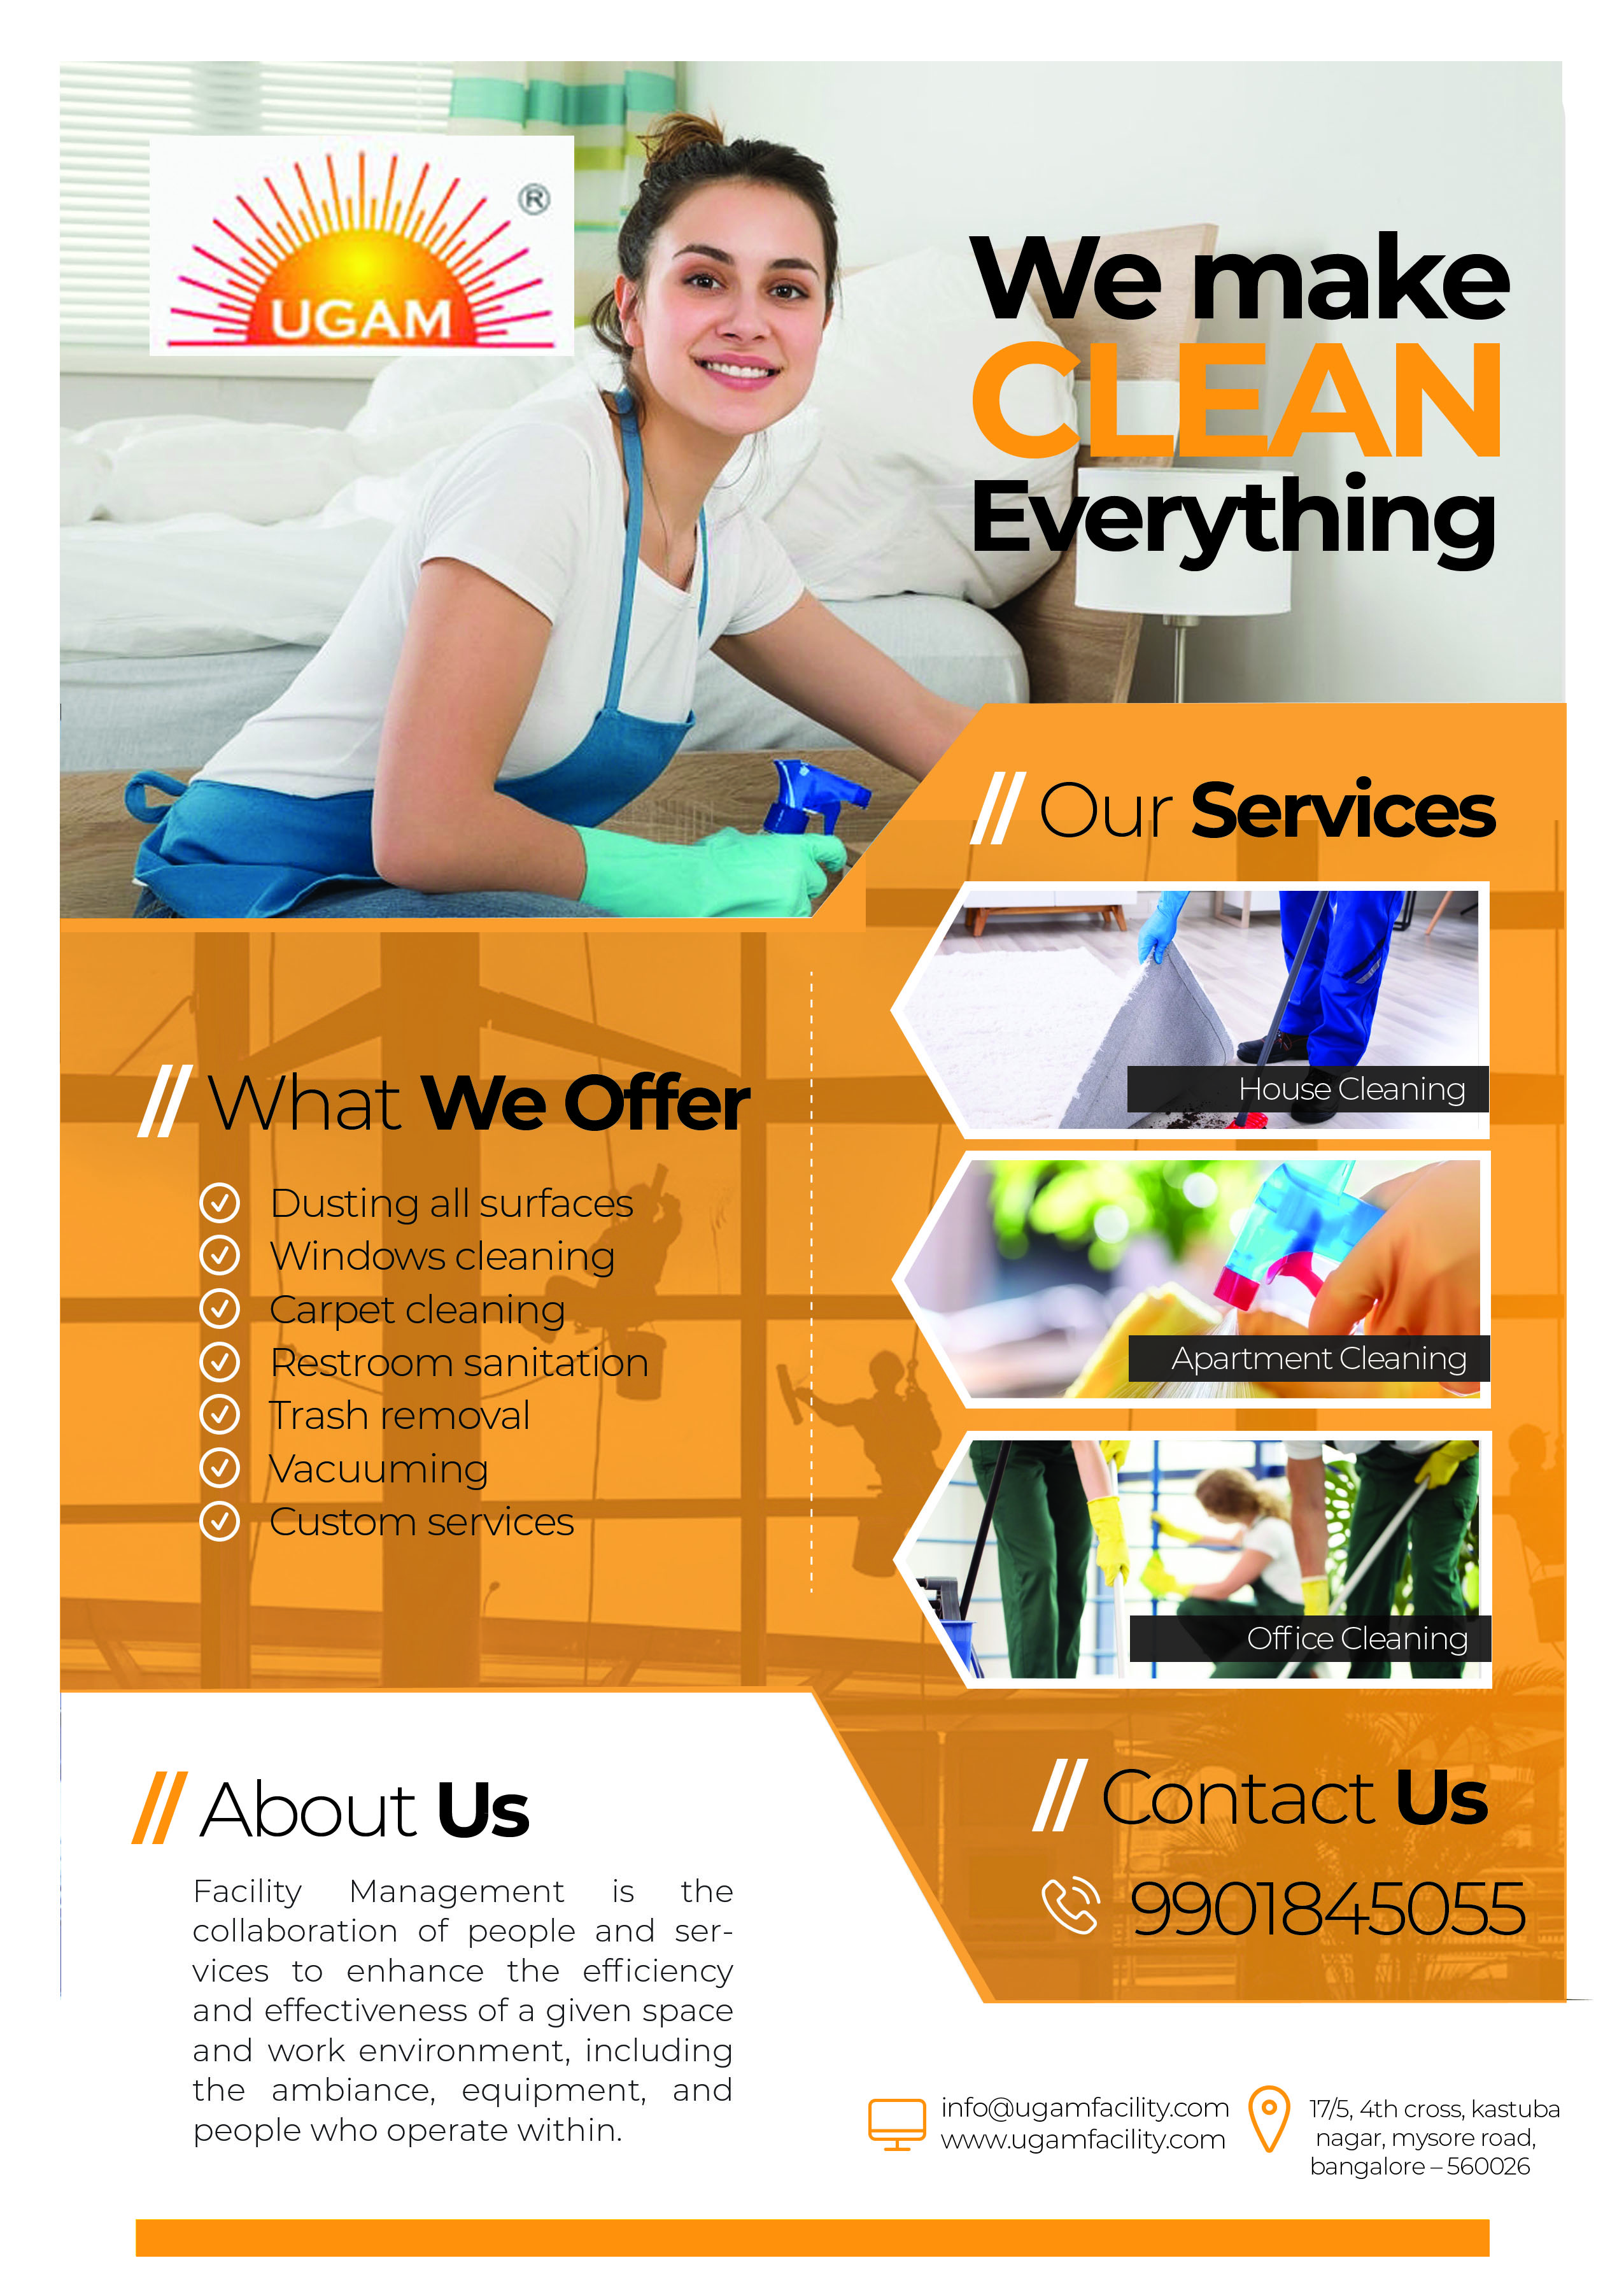 Cleaning Service Company Flyer - bangaloredigitalmarketing.com